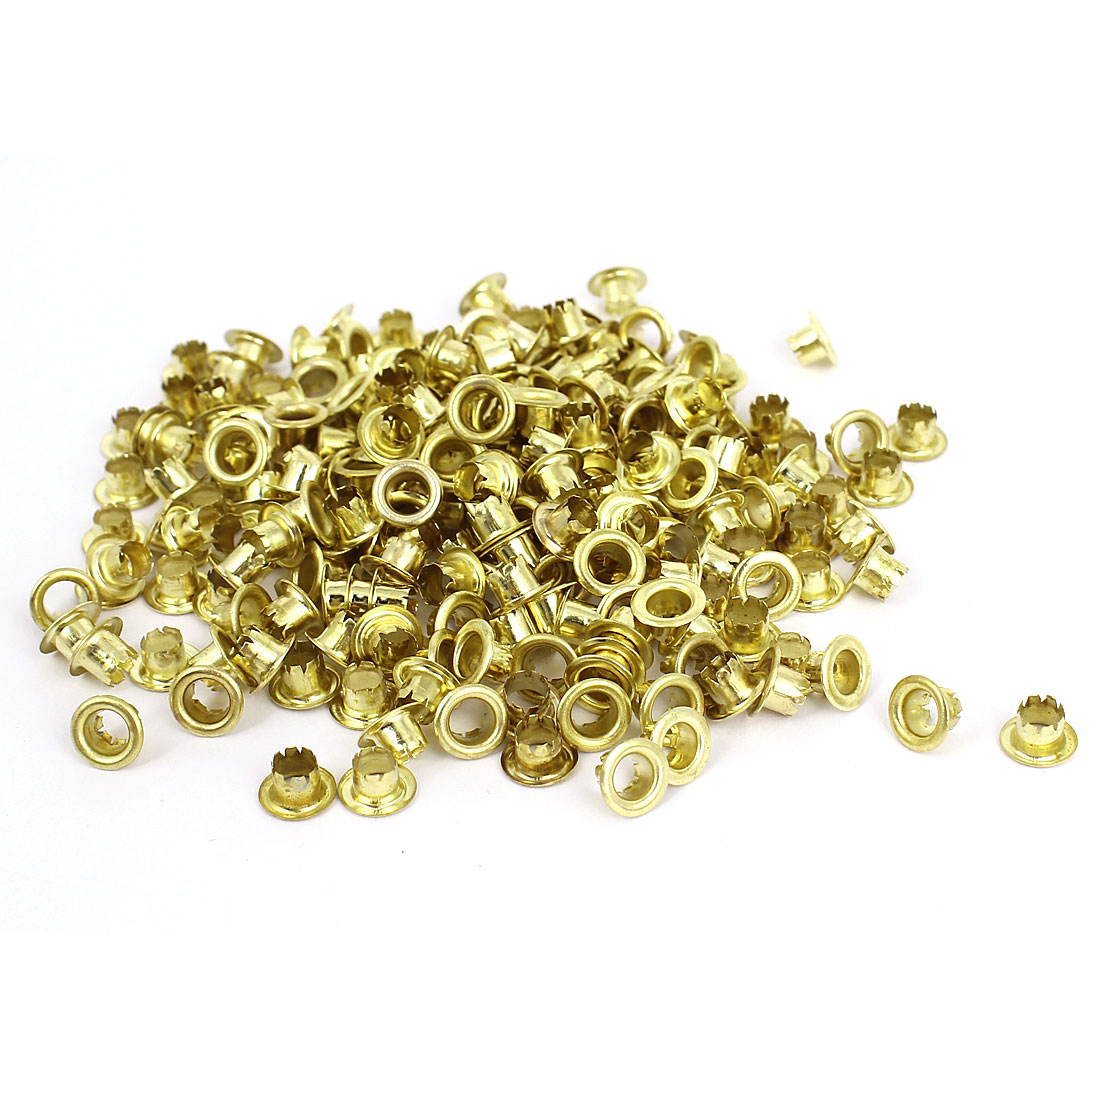 200Pcs Round Shaped Gold Tone Metal Eyelet Grommet for Leather Craft Belts